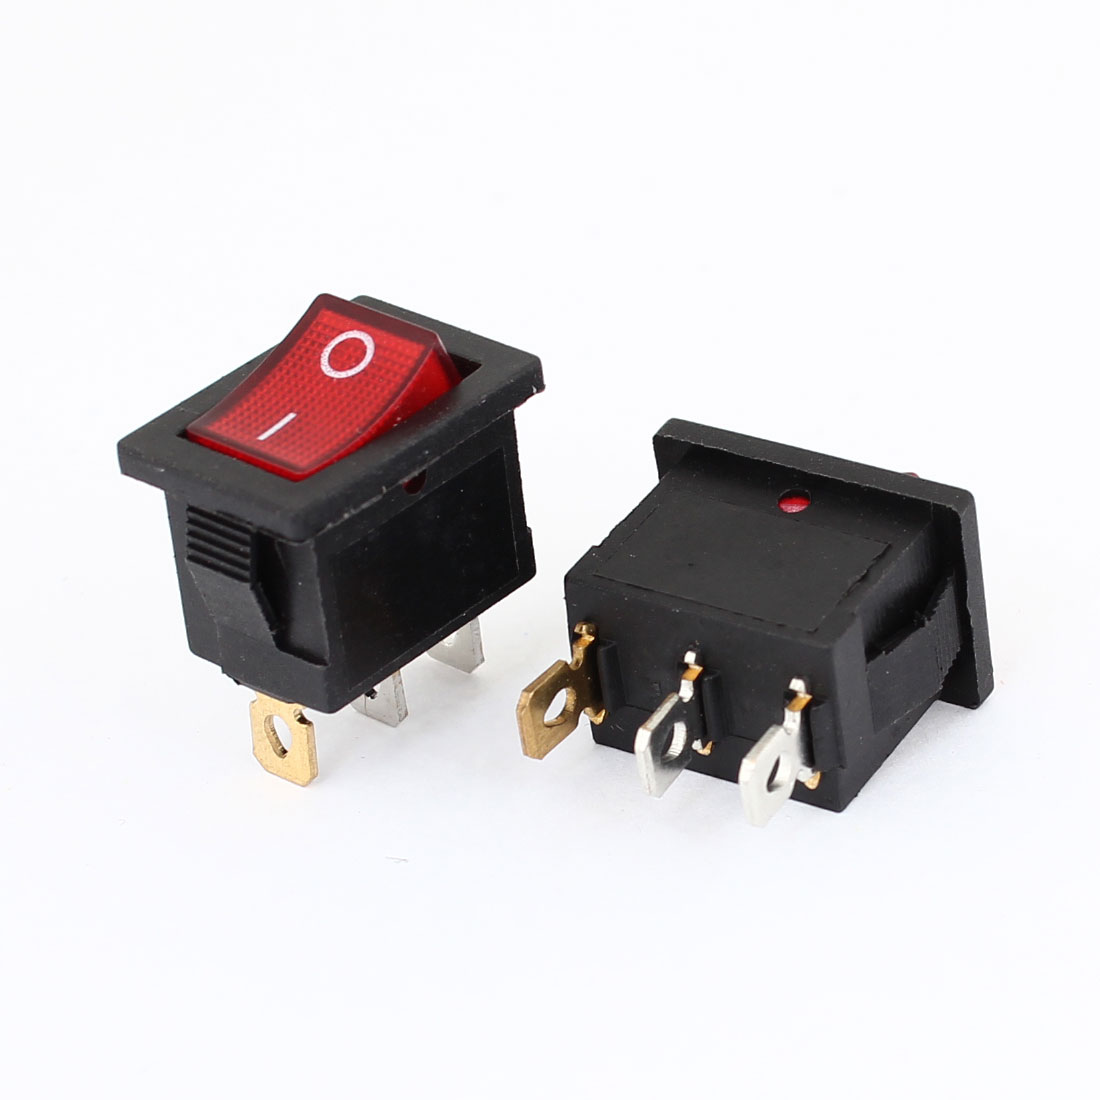 2 Pcs Red Indicator Light 3 Pins 2 Positions ON-OFF Rocker Switch